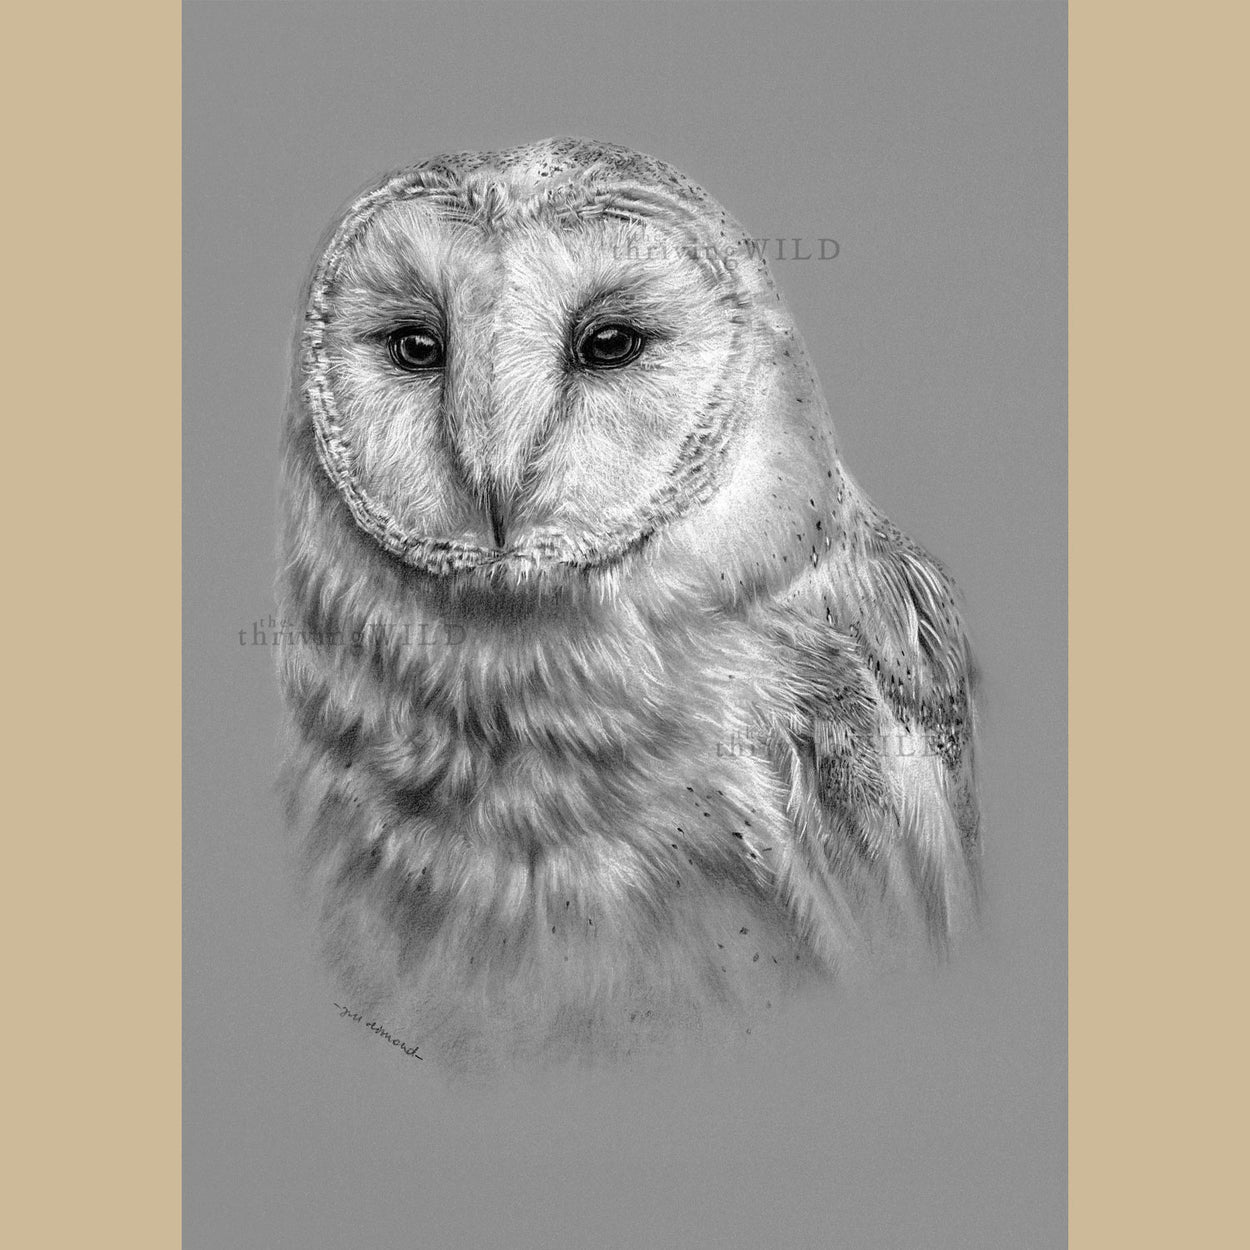 Barn Owl Charcoal Drawing - The Thriving Wild - Jill Dimond